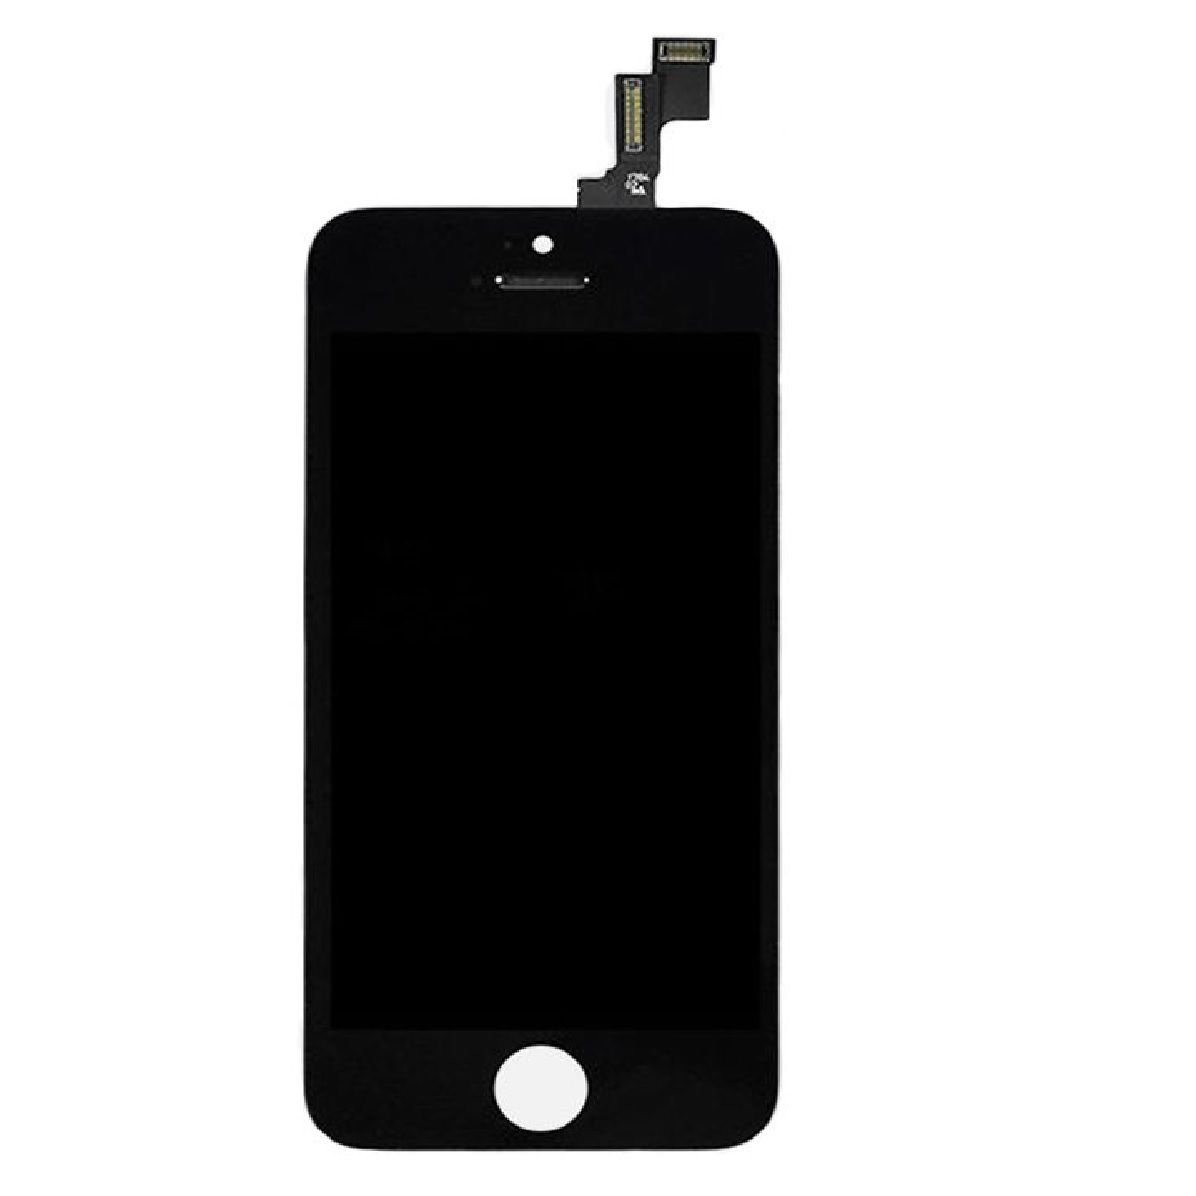 iphone 5s digitizer replacement black lcd touch screen display digitizer assembly 7714